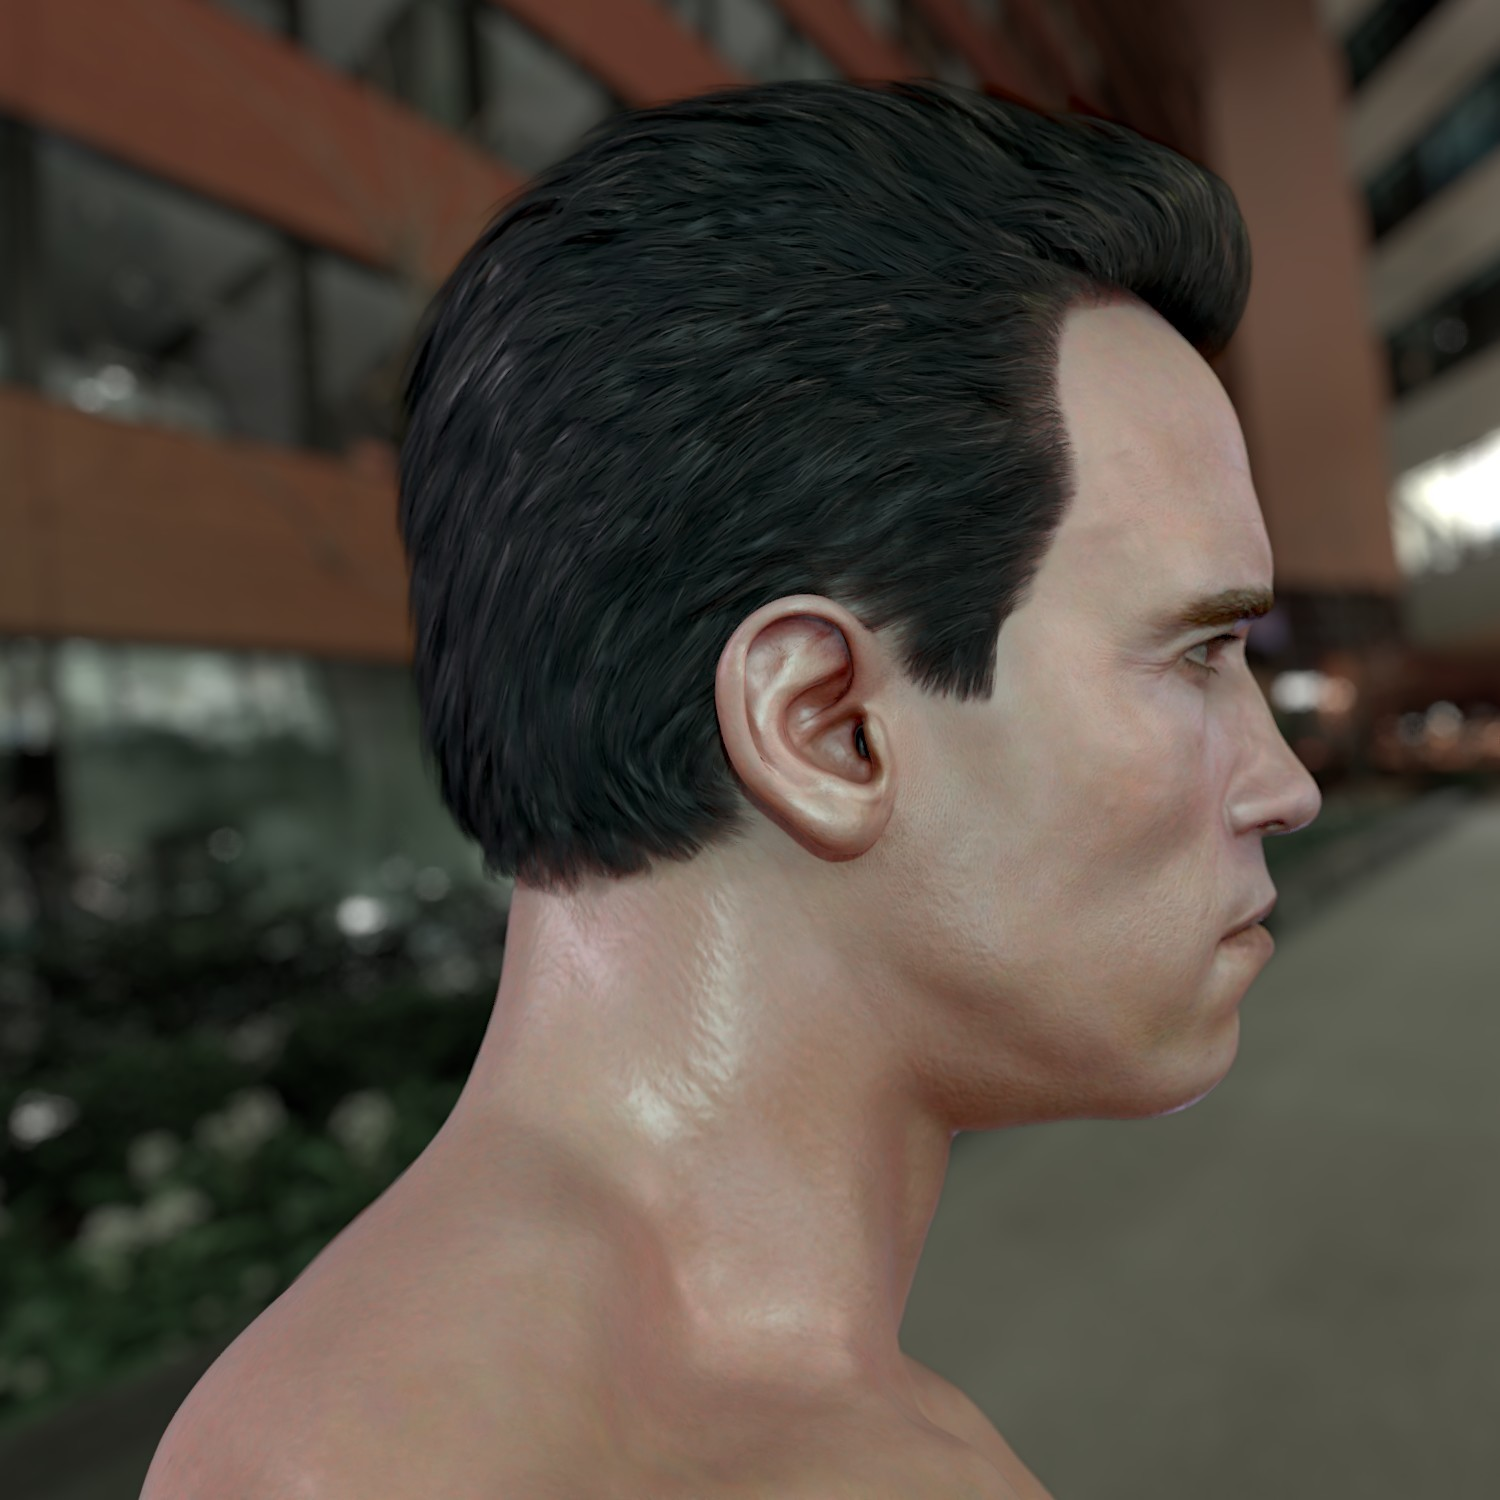 ArtStation - The 3D model Arnold Schwarzenegger, Stephan